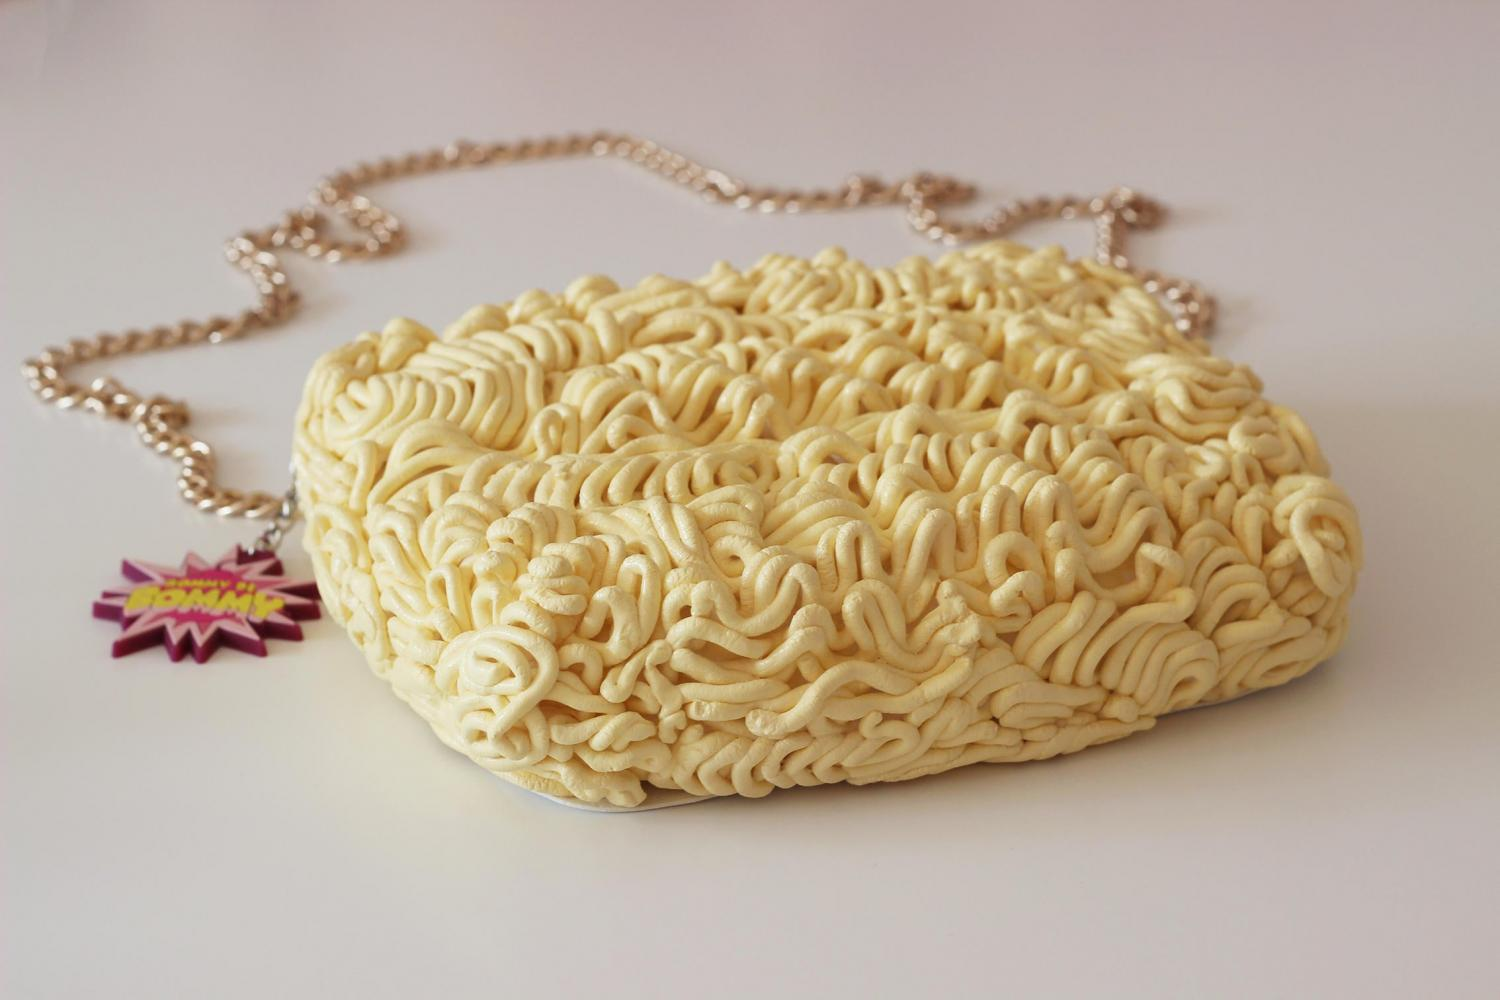 Ramen Noodles Handbag - Asian noodles clutch purse